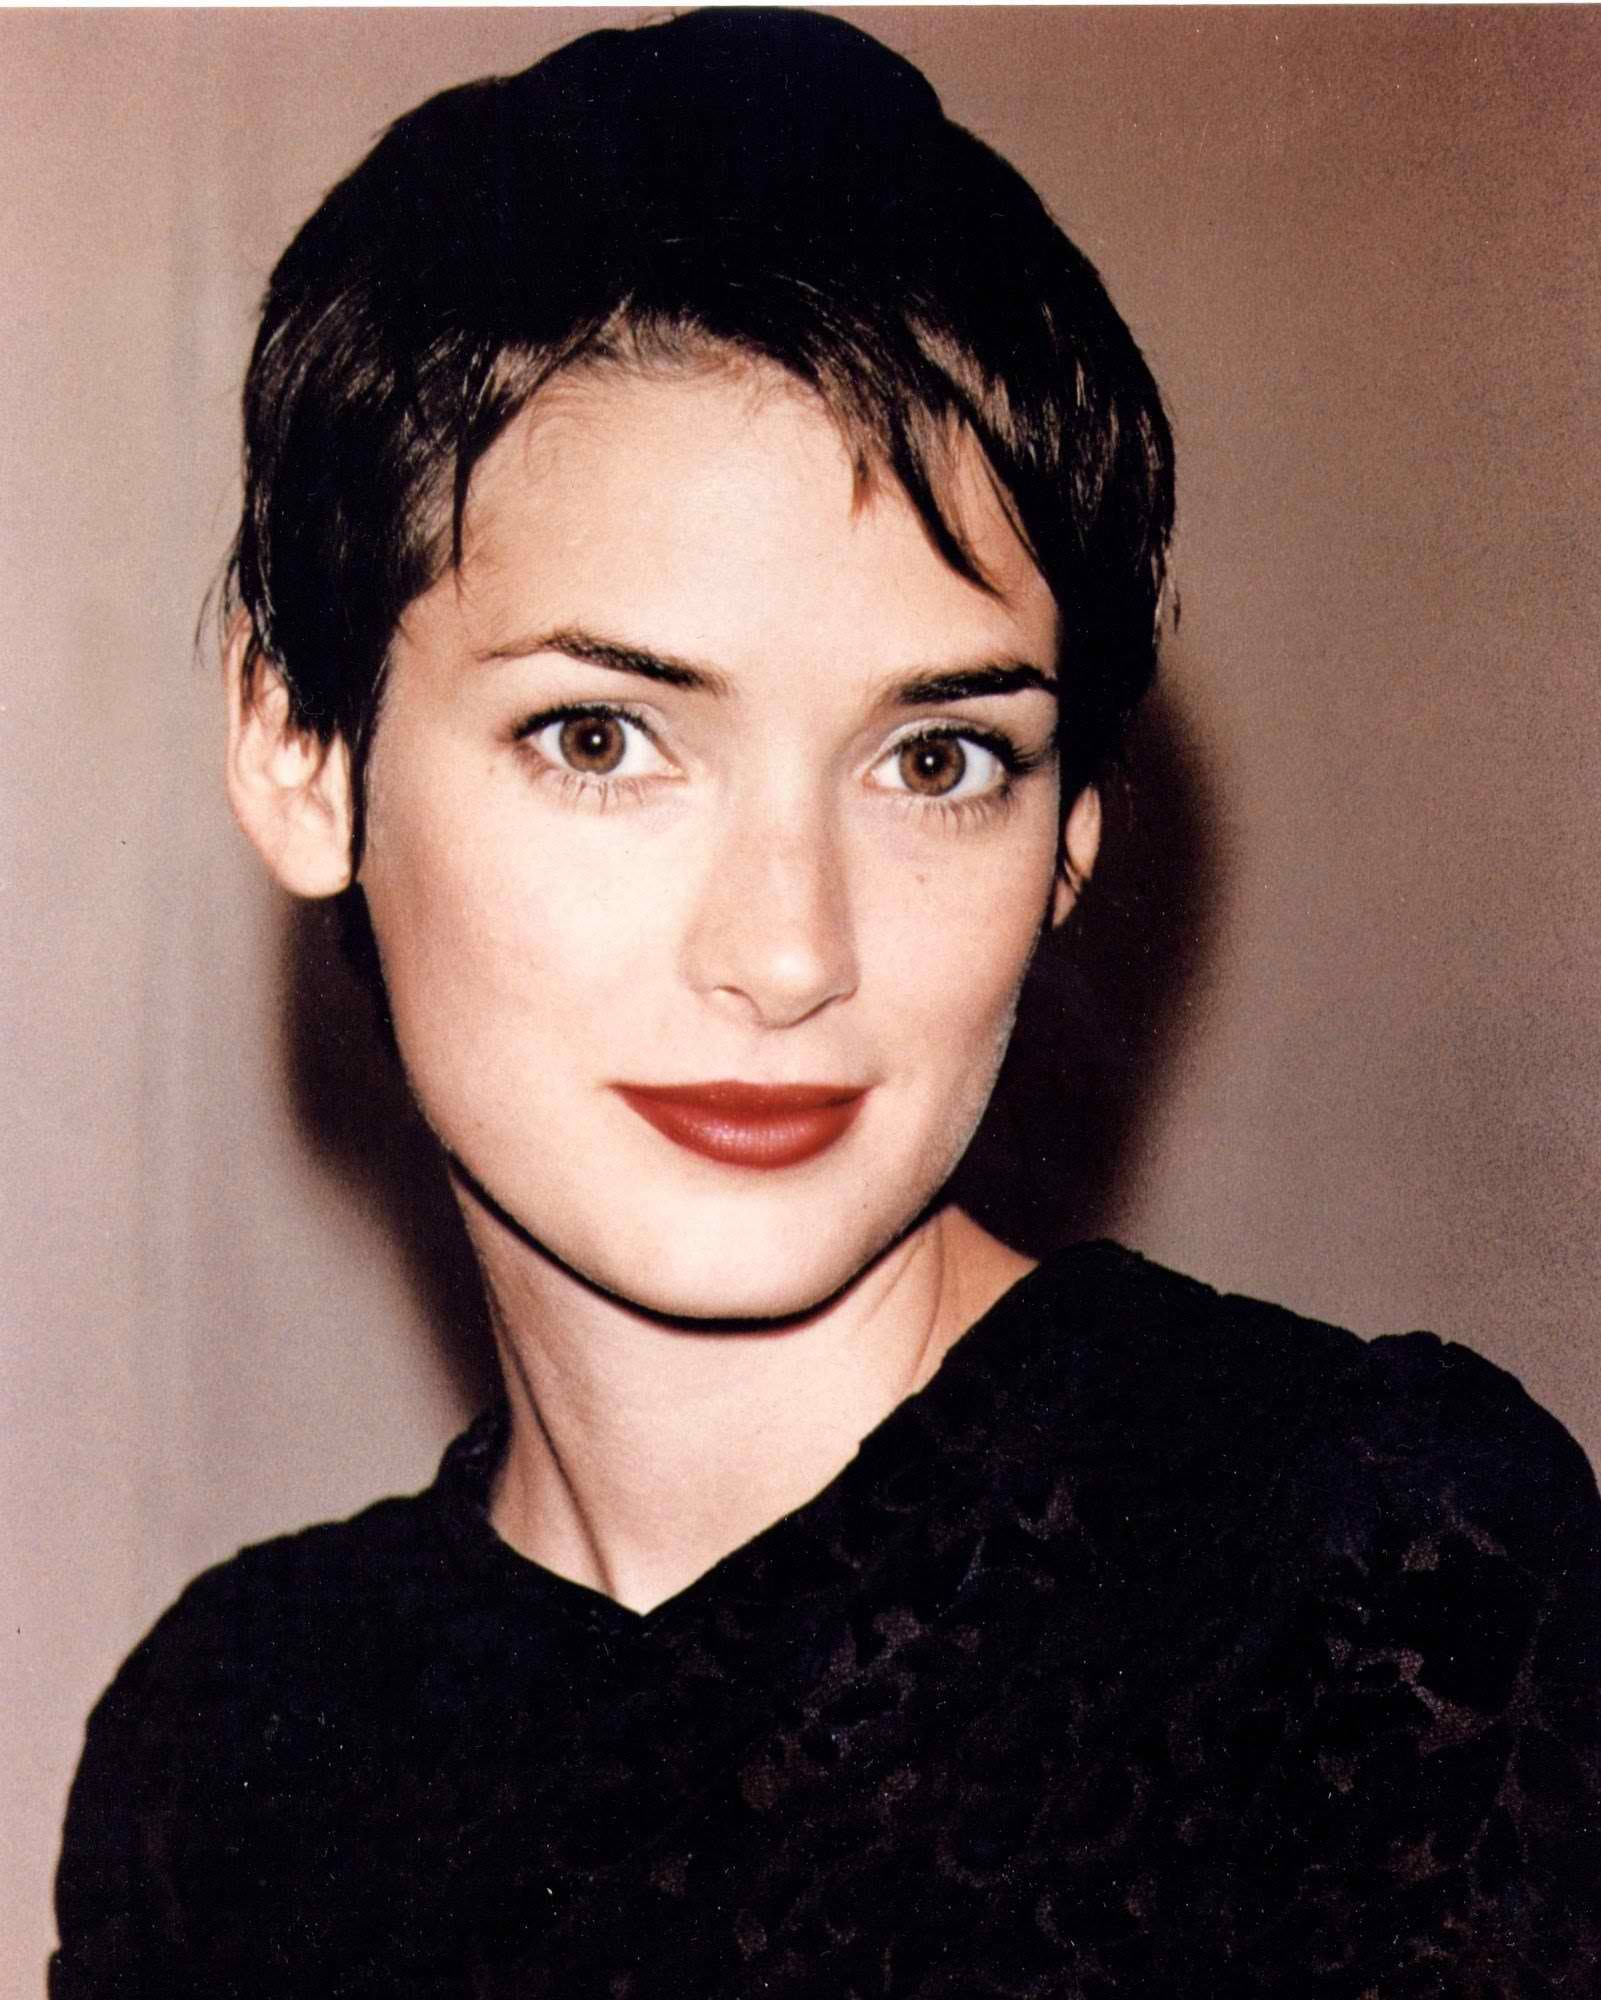 Discussion on this topic: Margaret Laurence (actress), winona-ryder/